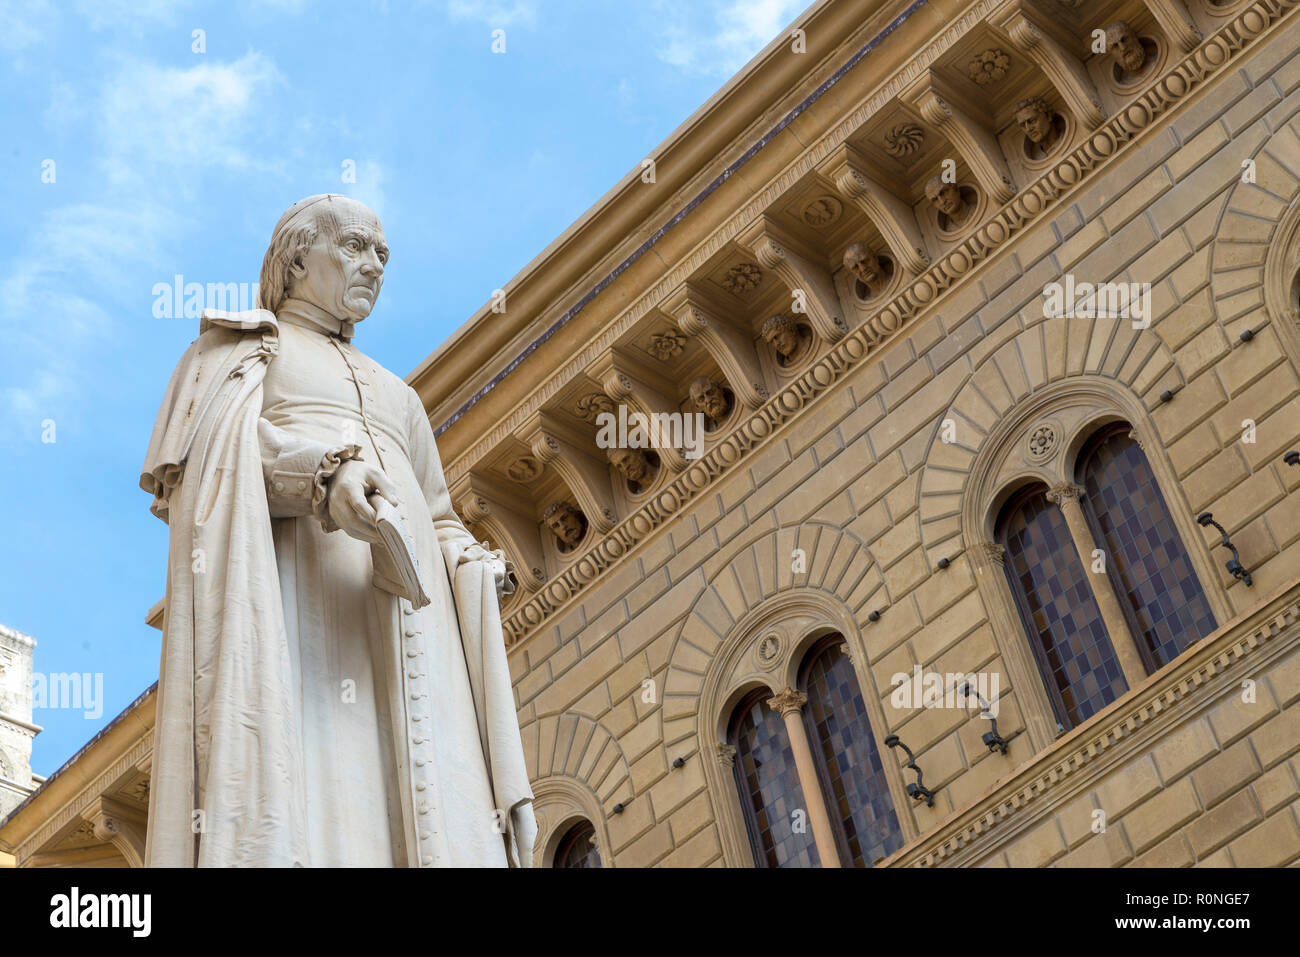 SIENA, ITALY - OCTOBER 27, 2018: statue of Sallustio Bandini. He was an advocate of free trade, and removal of local feudal tariffs and tolls. - Stock Image